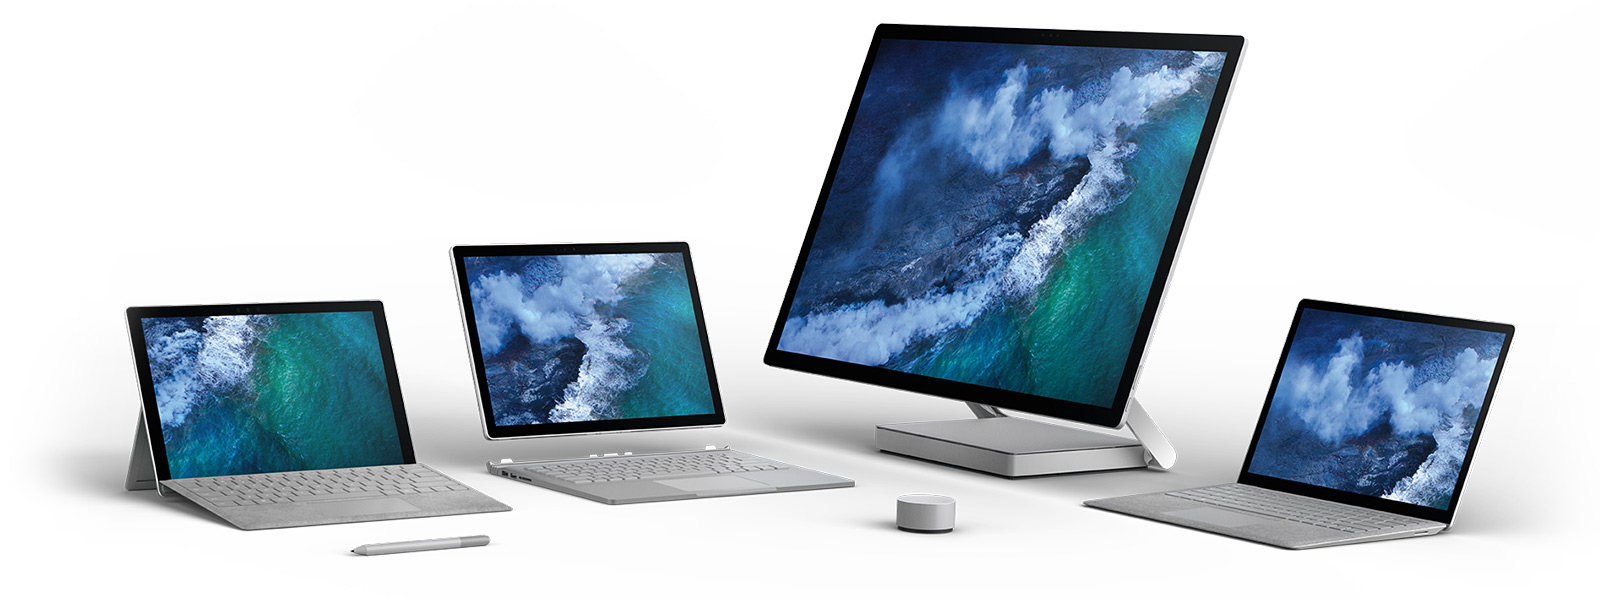 Surface Studio, Surface Book 2, Surface Laptop and Surface Pro side by side with Surface Pen and Surface Dial.